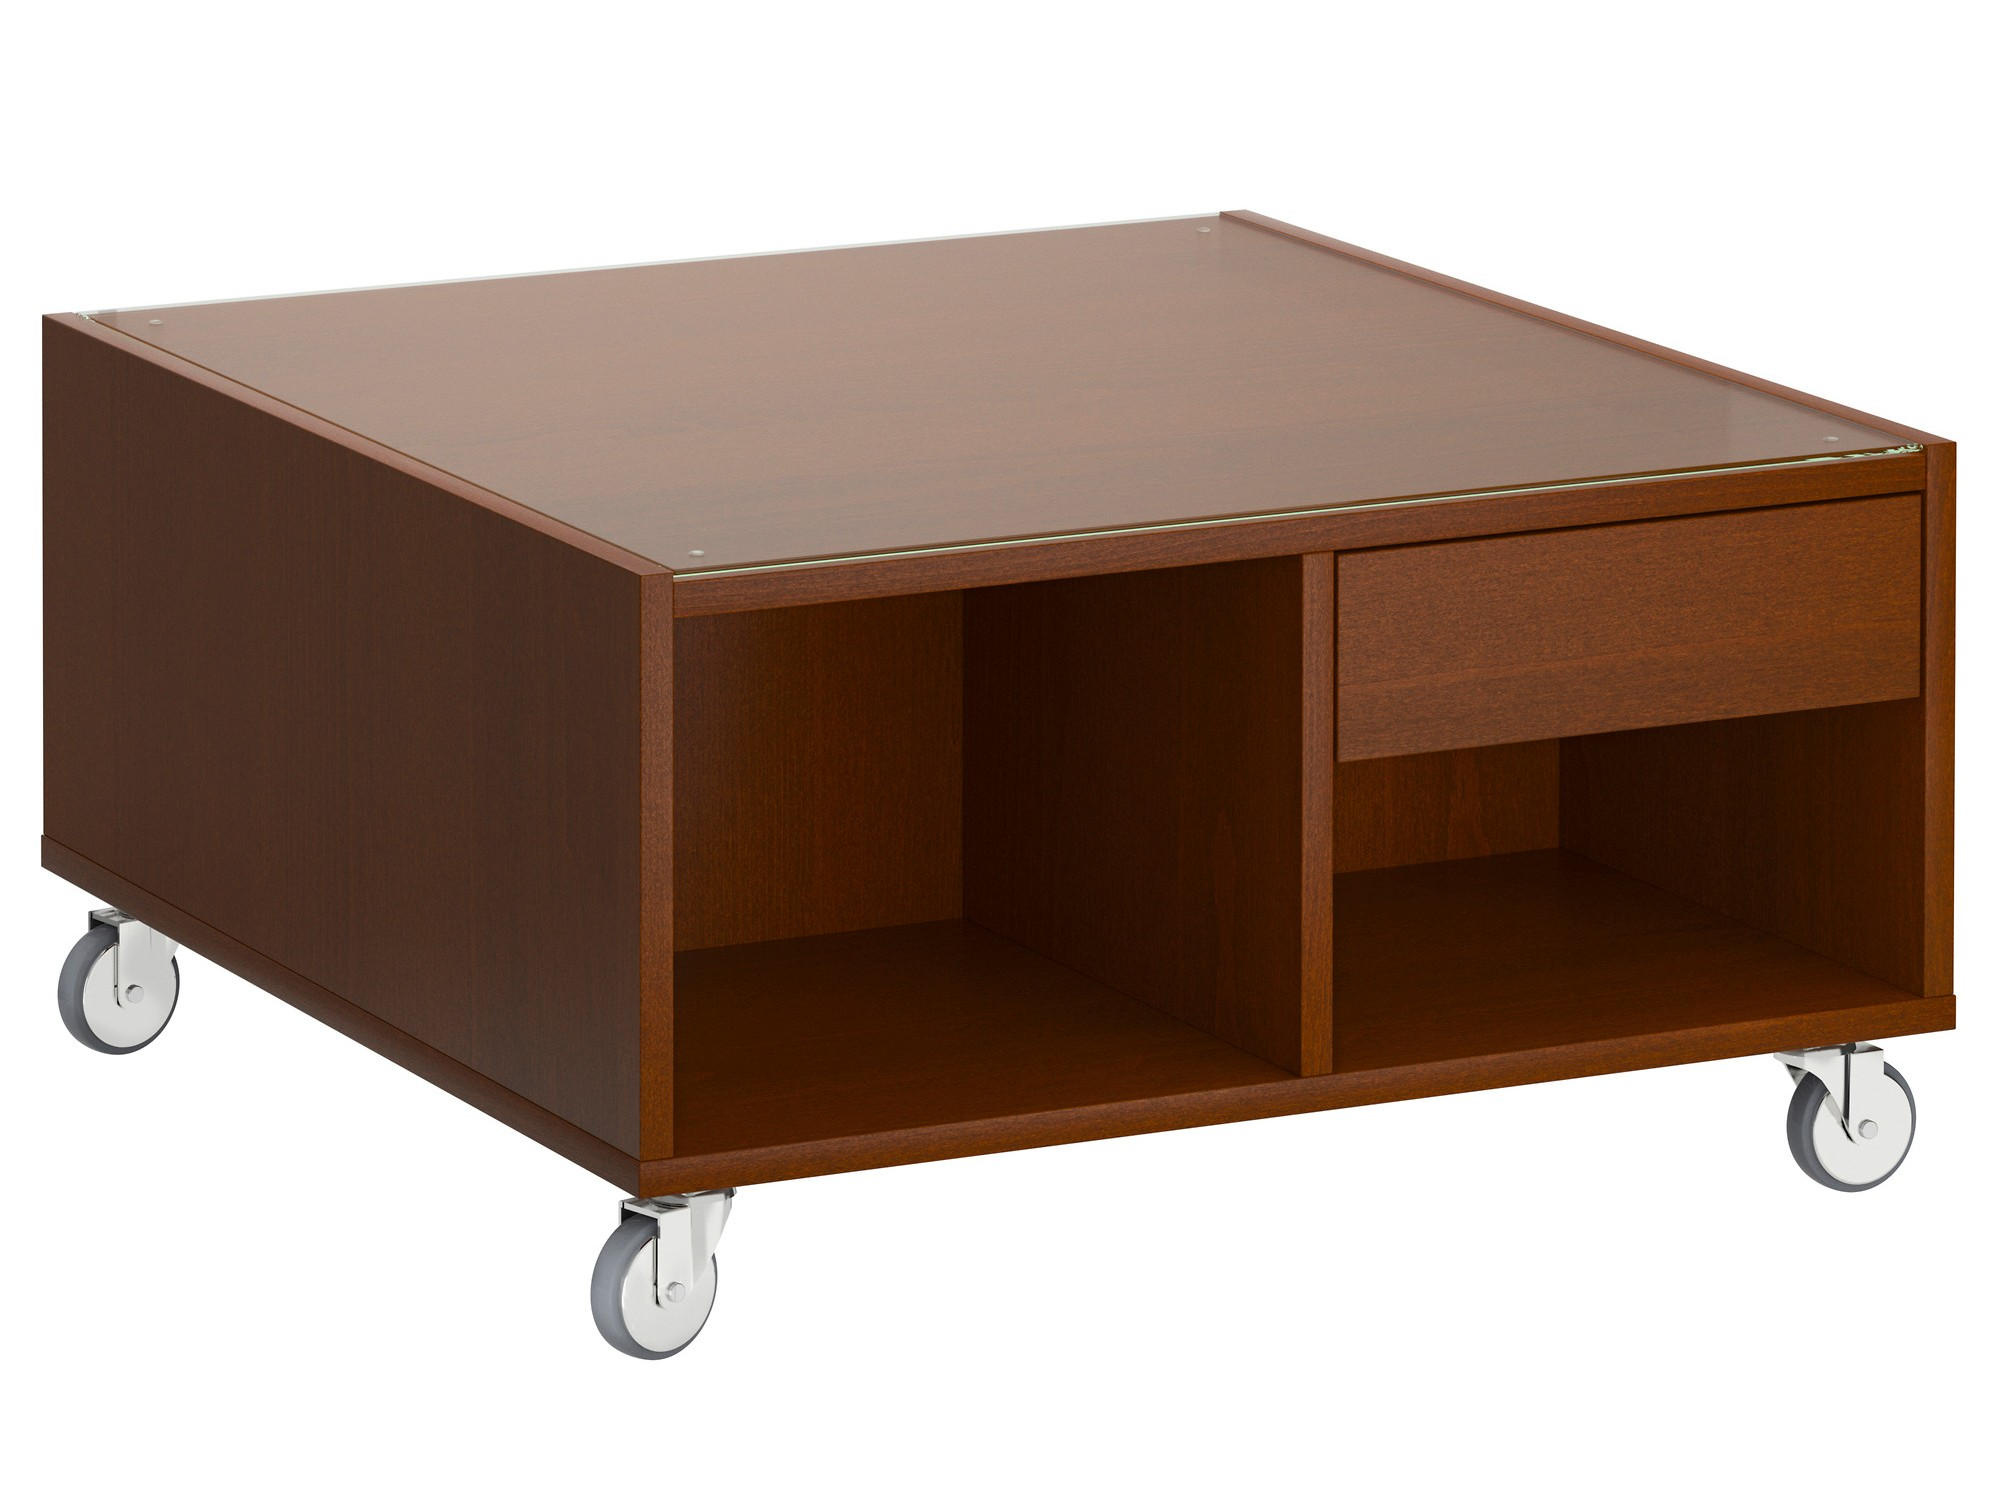 title | Average Coffee Table Height